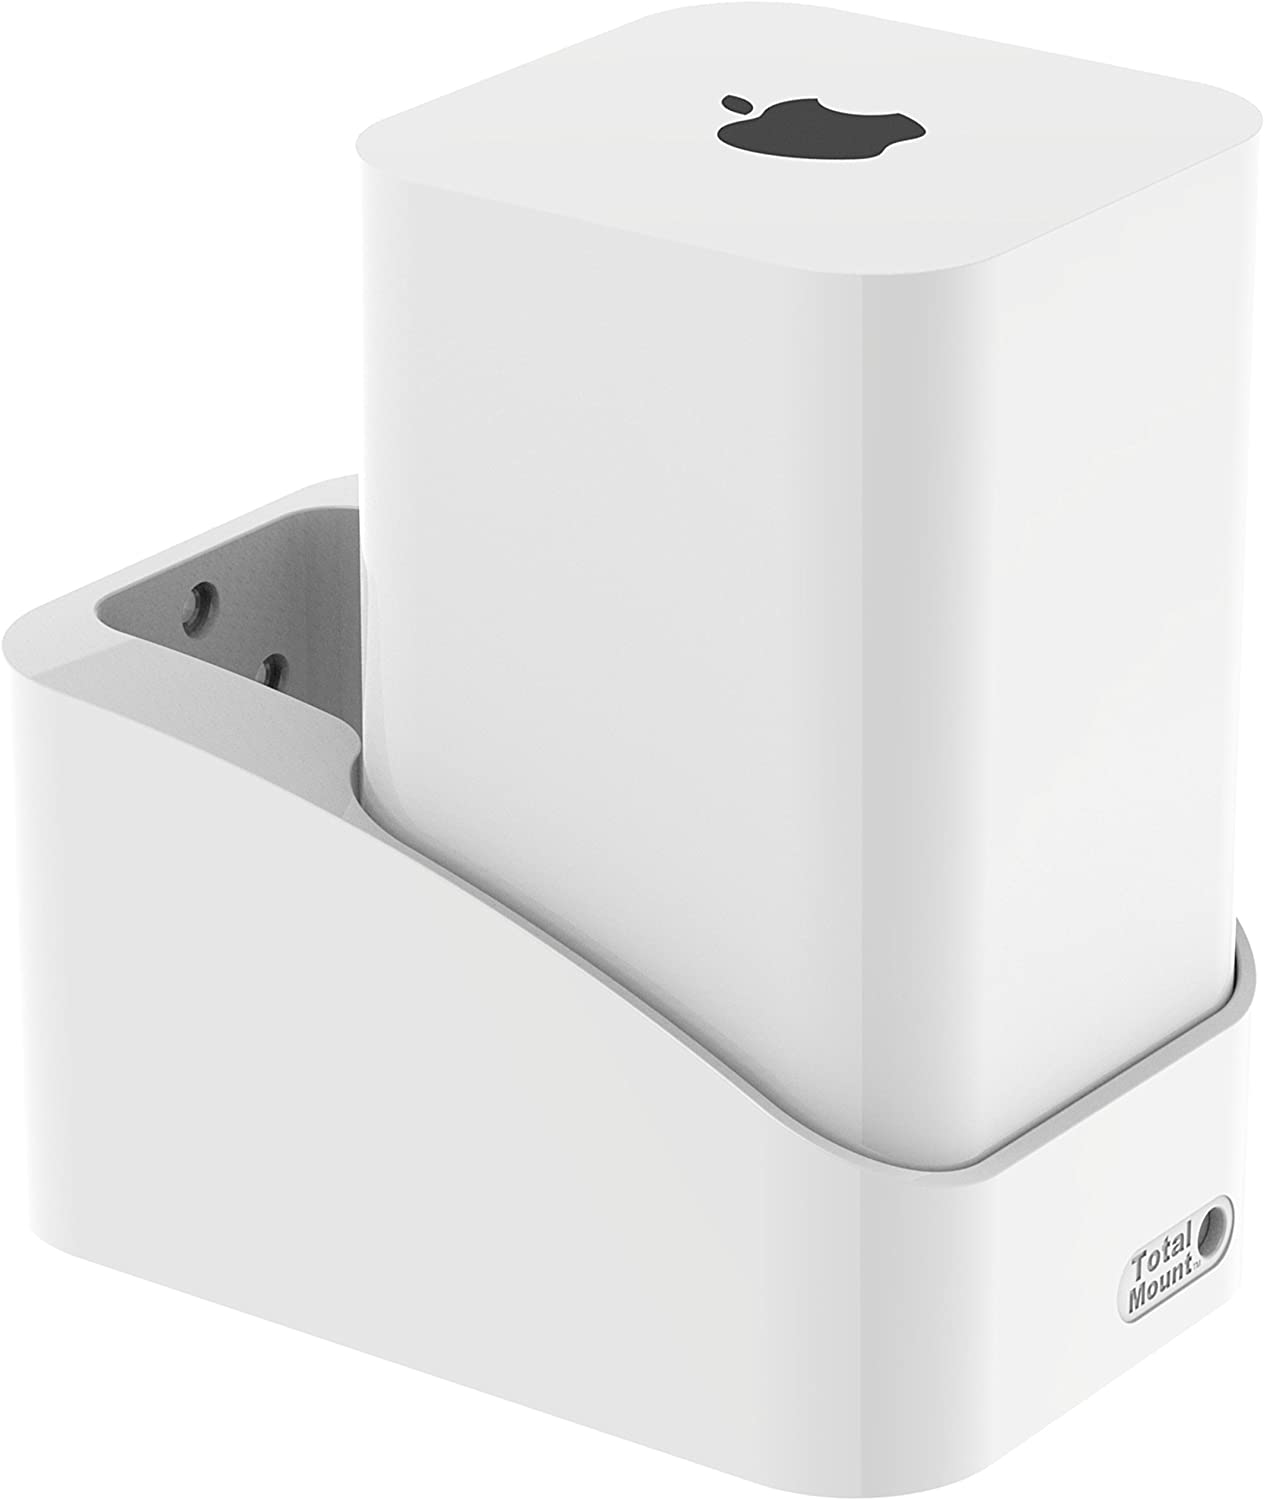 TotalMount for Airport Extreme and Airport Time Capsule (Deluxe Mount)